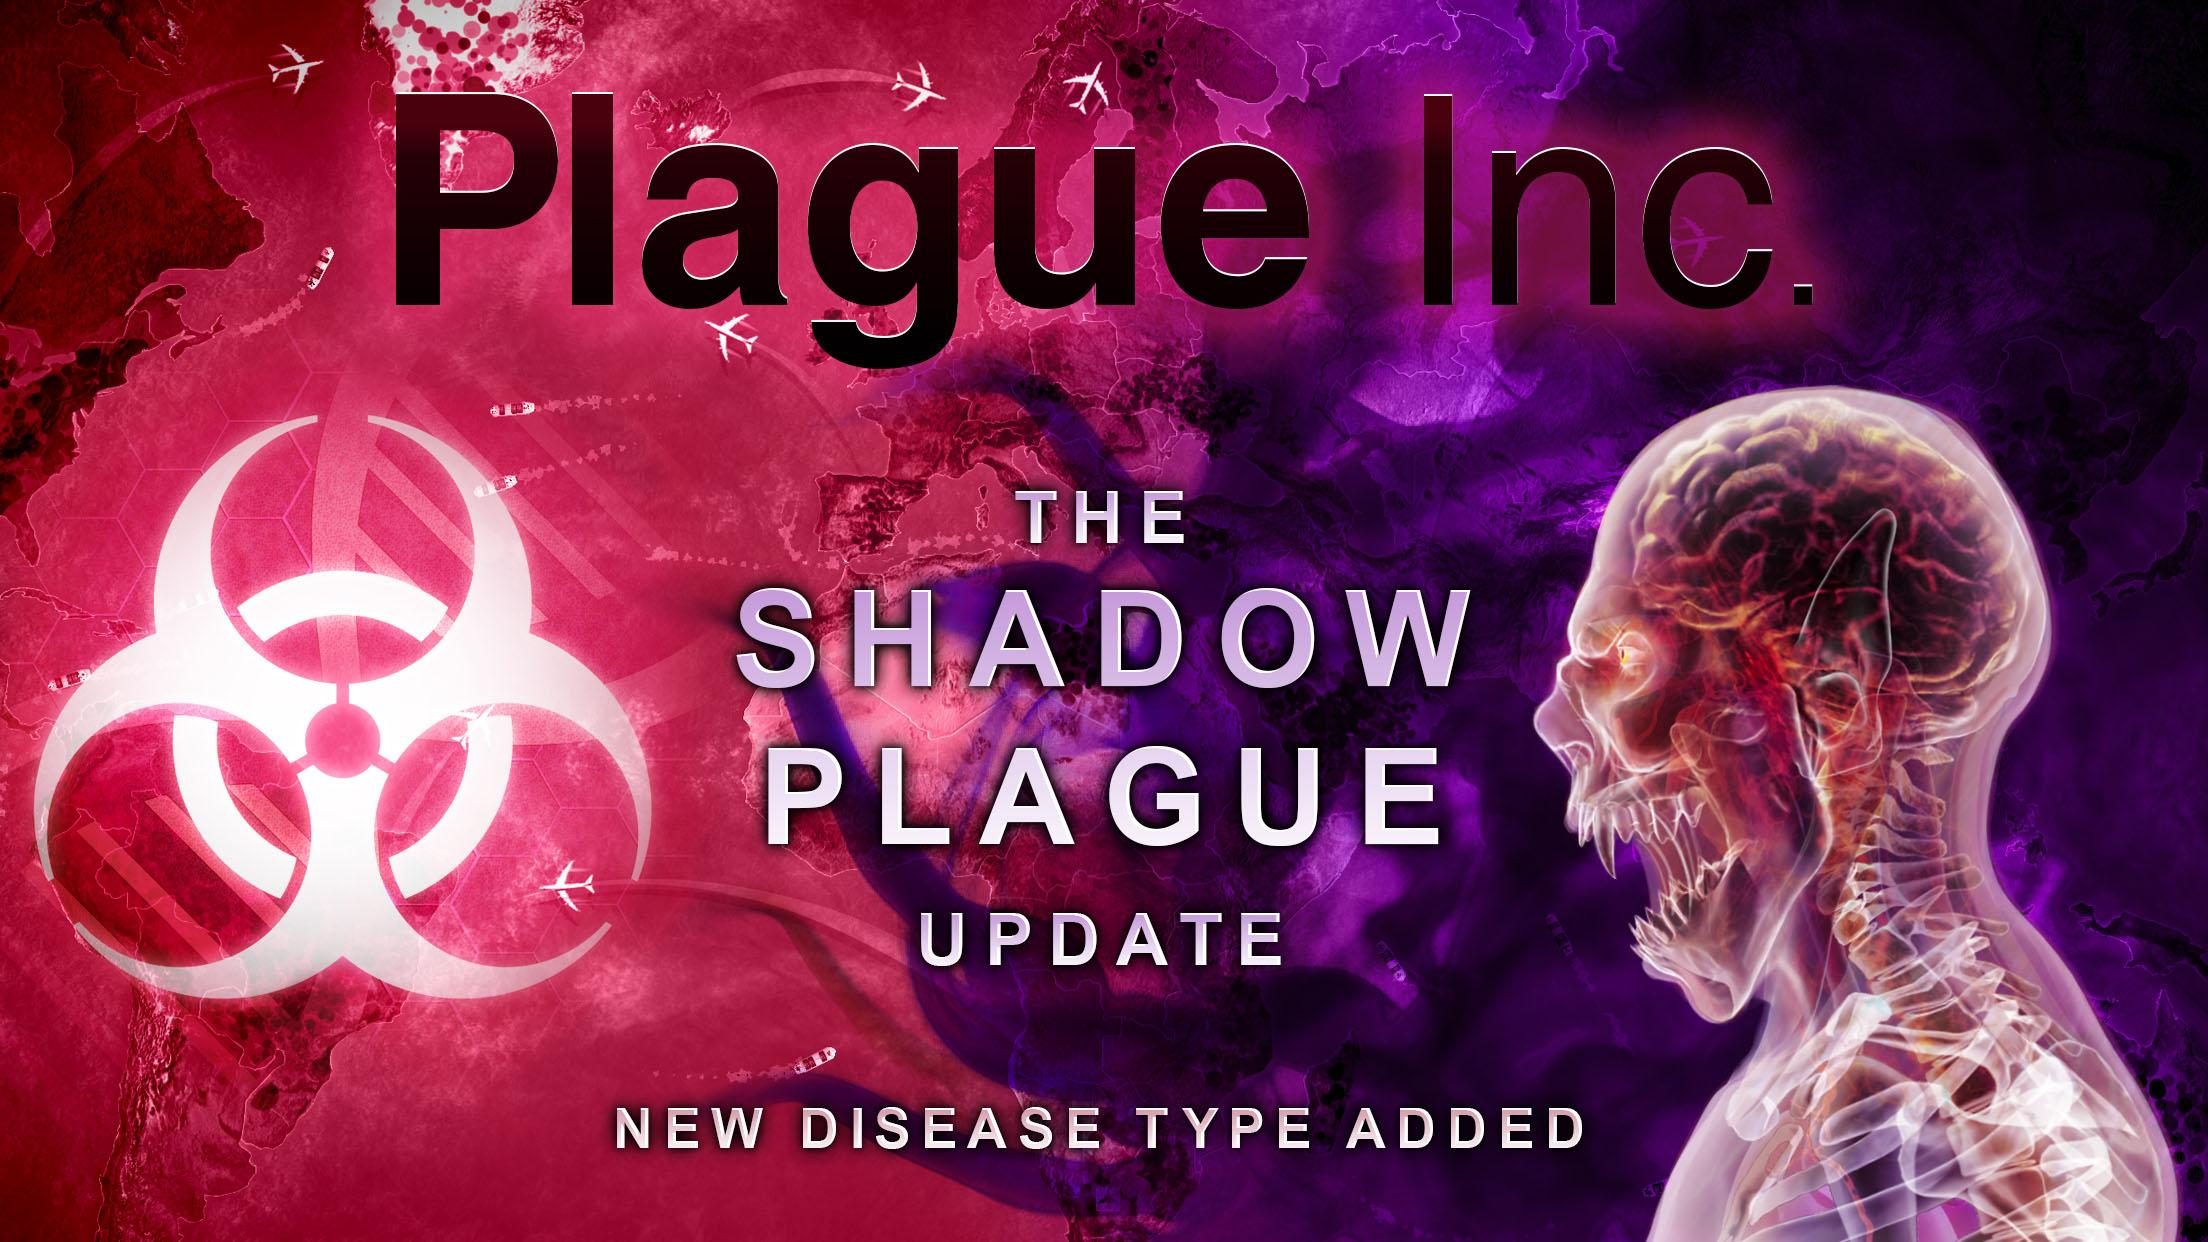 Plague Inc Mod Apk v1.16.1 (Unlocked/Unlimited DNA) Latest Version 6